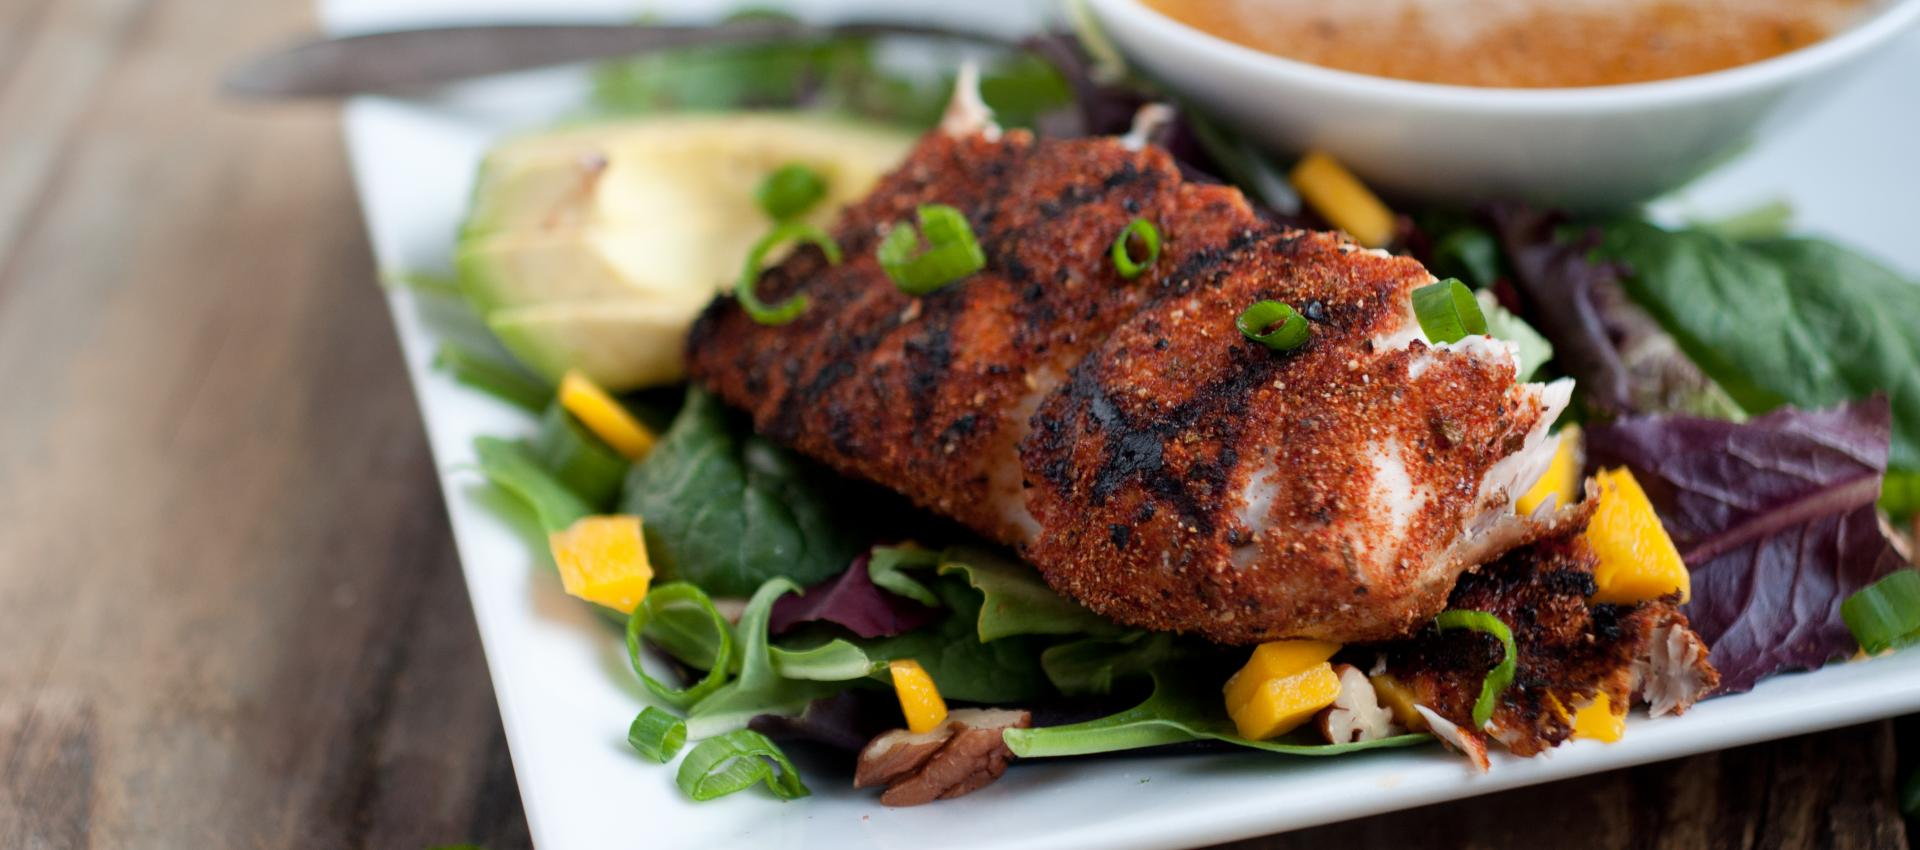 blackened mahi mahi on salad